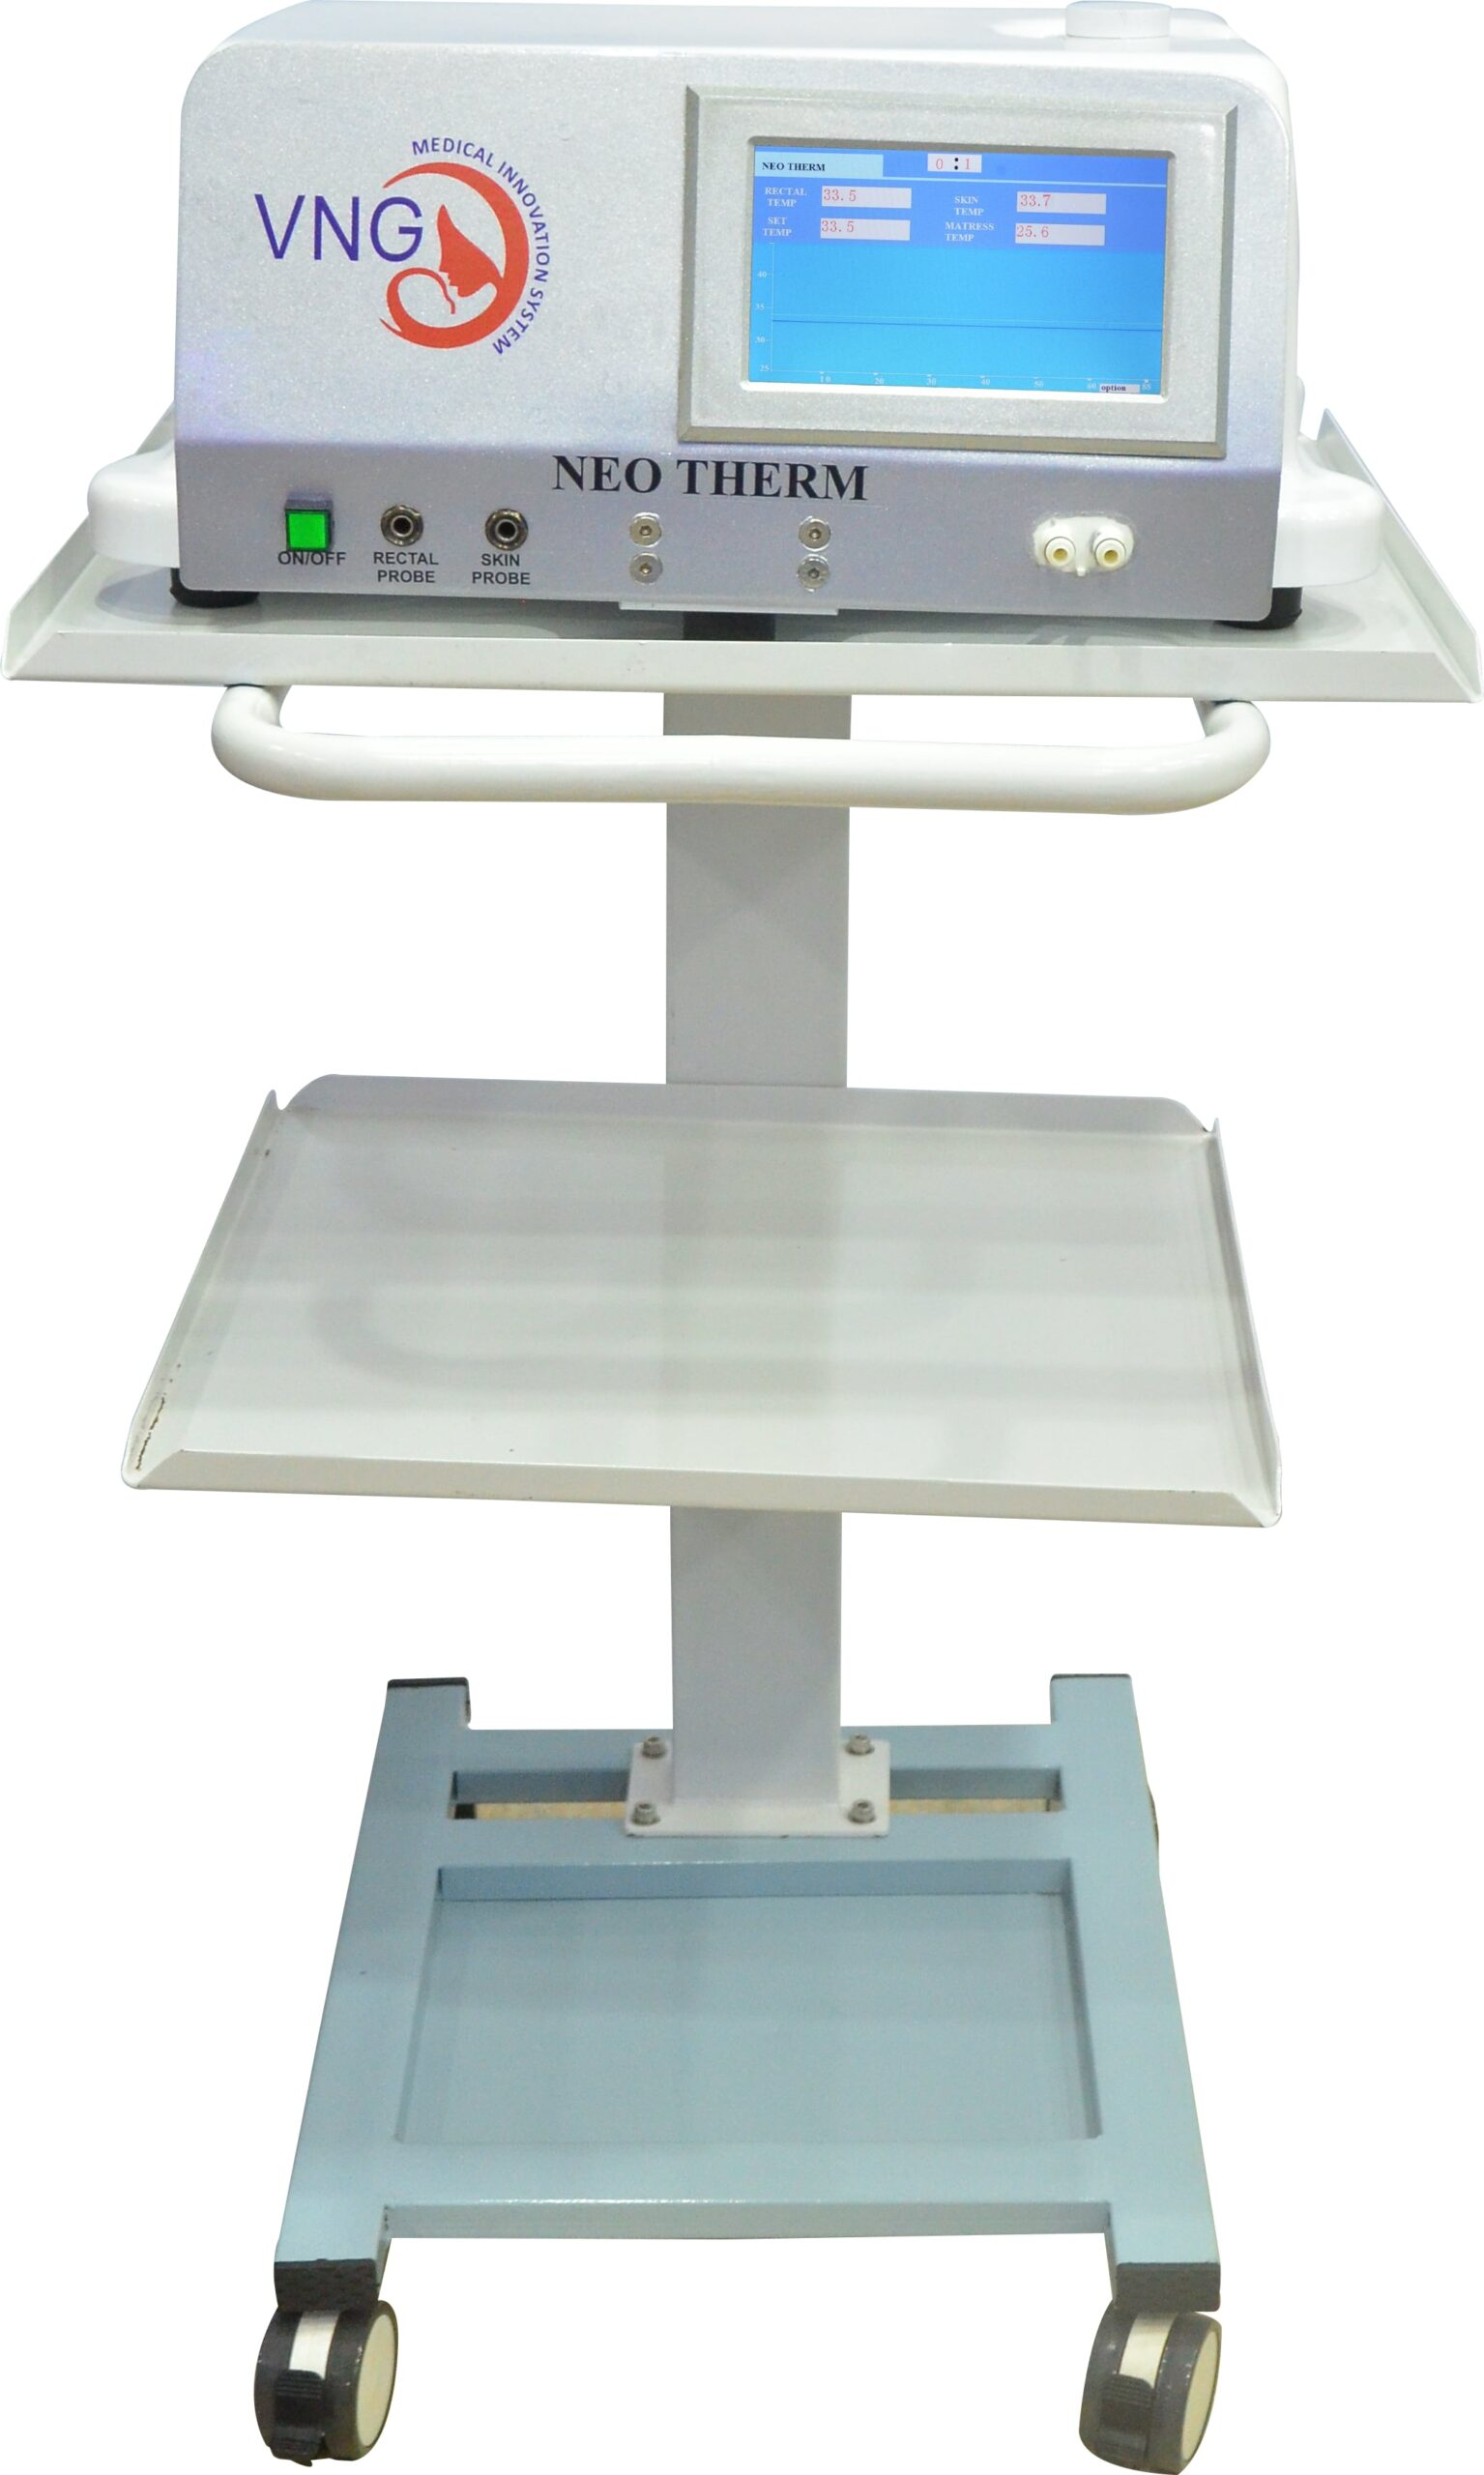 Neotherm is cooling system used to treat Newborn Babies born with Birth Asphyxia ,a state when Baby is deprived of enough oxygen.